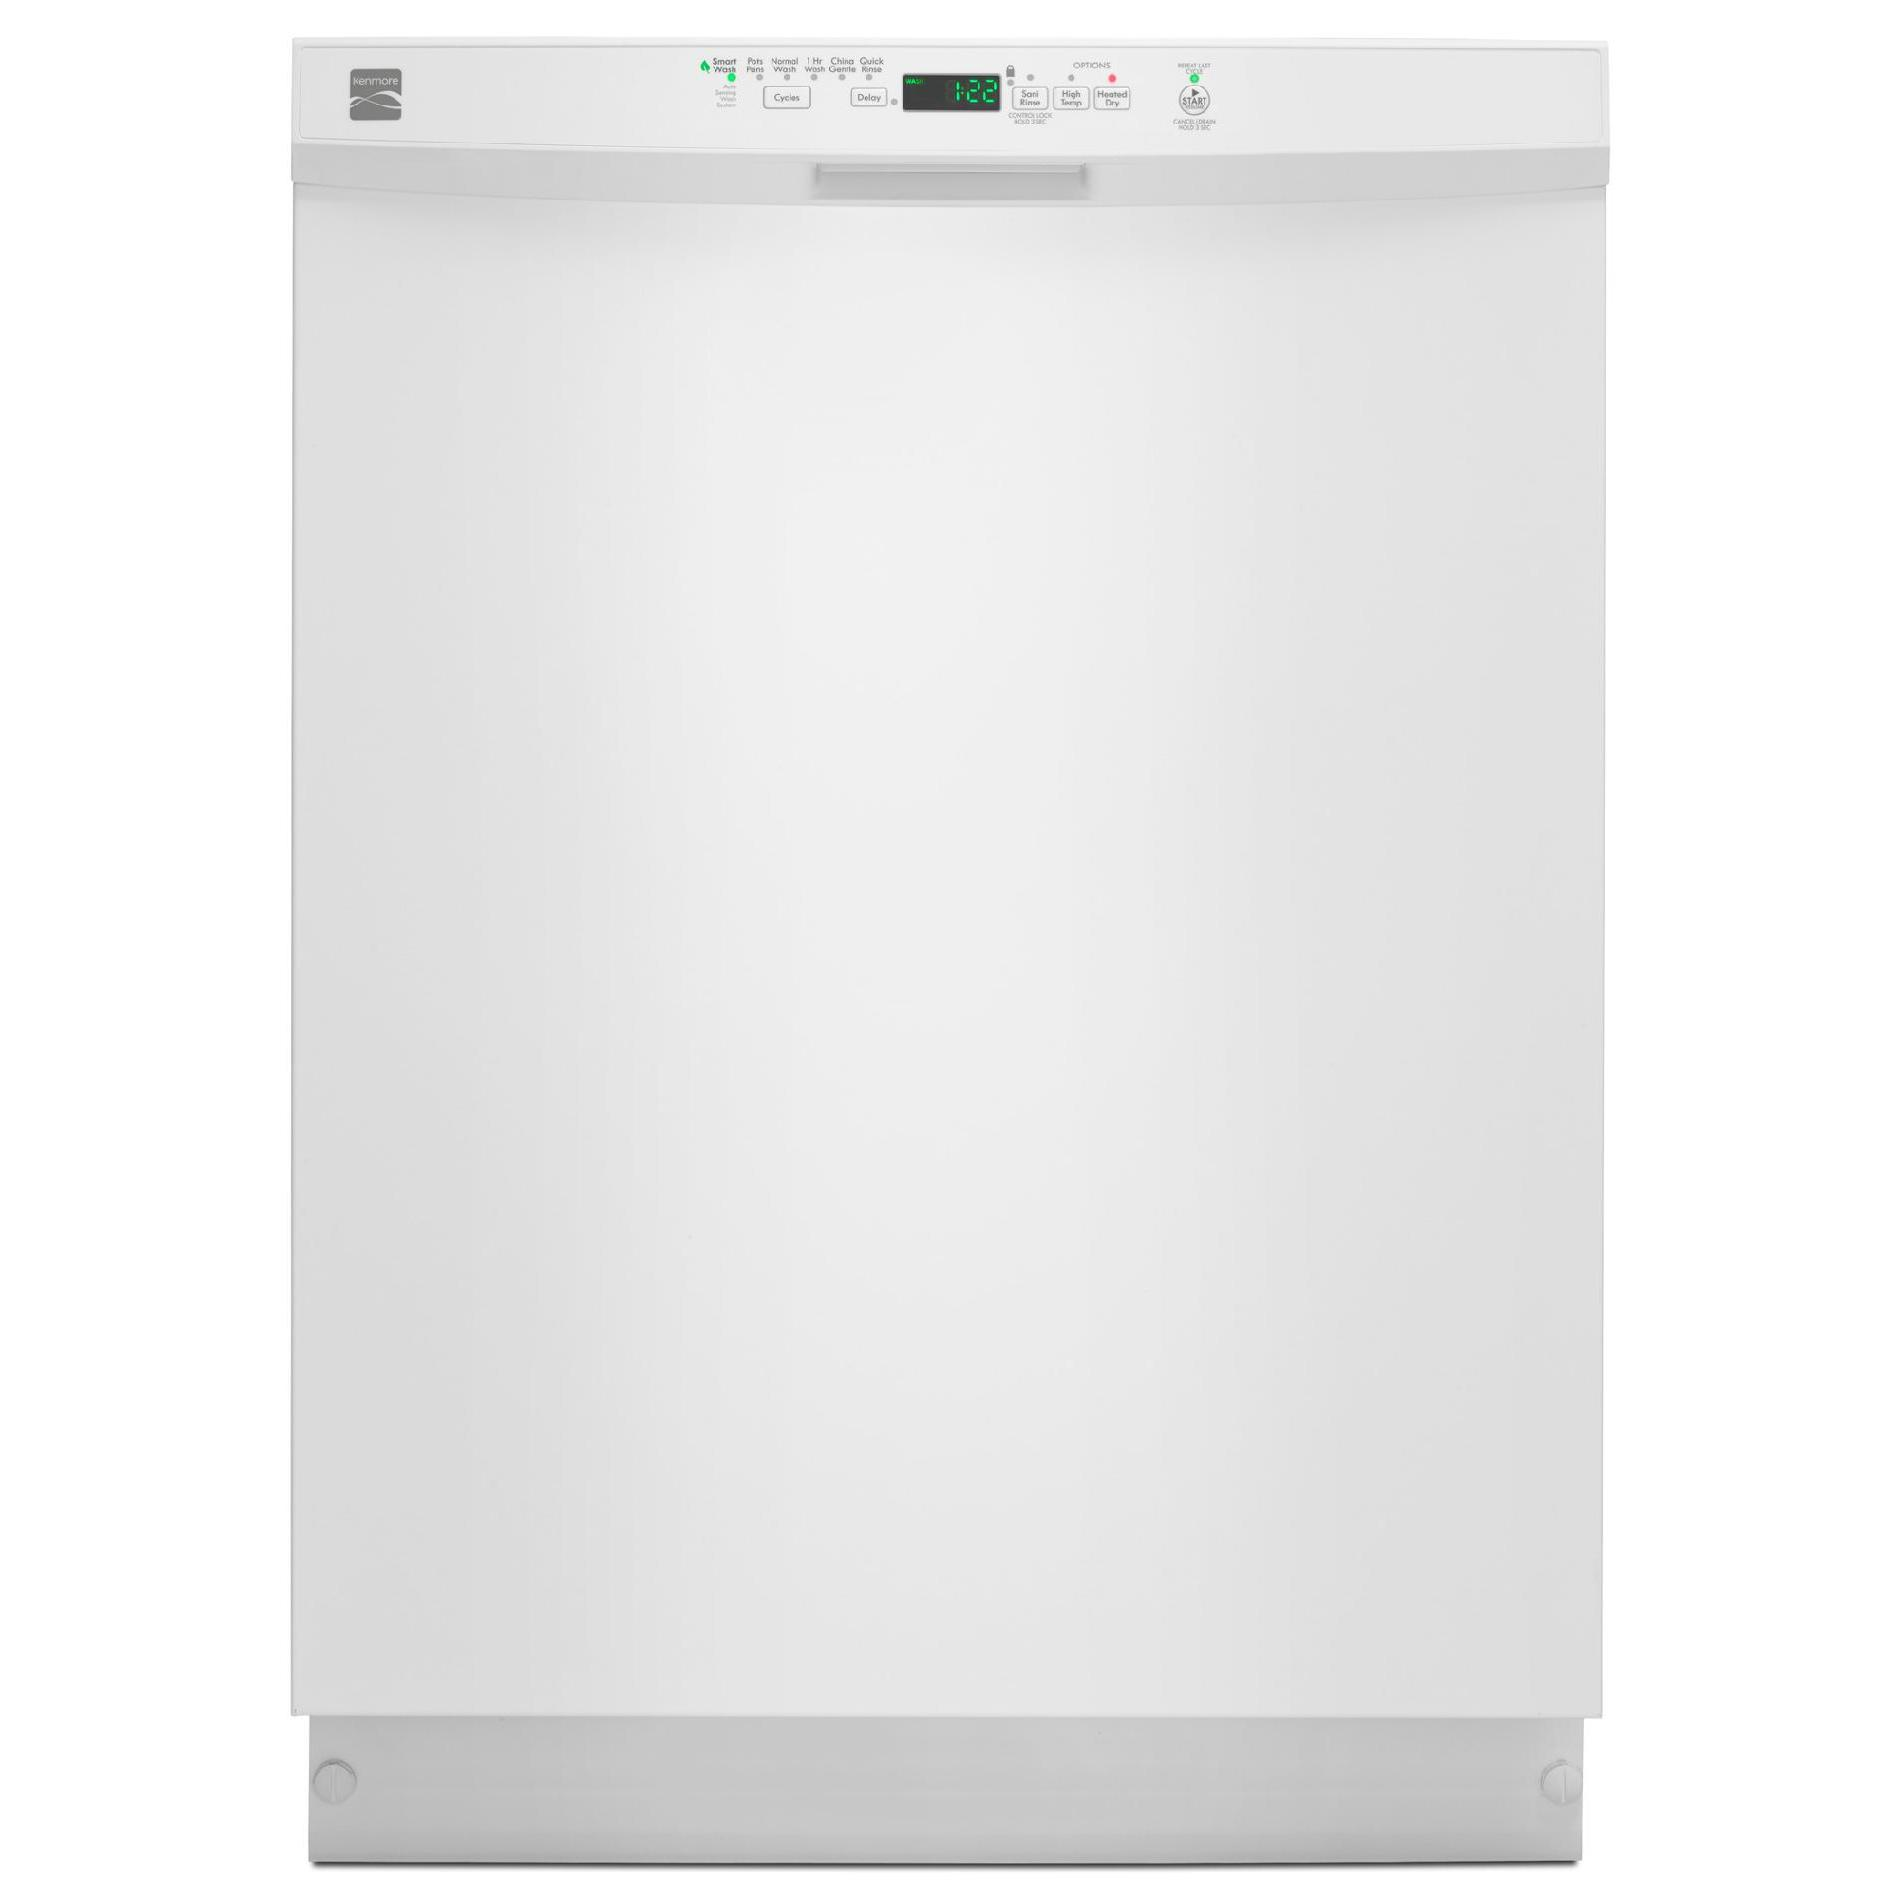 13222-24-Built-In-Dishwasher-w-PowerWave%E2%84%A2-Spray-Arm-White